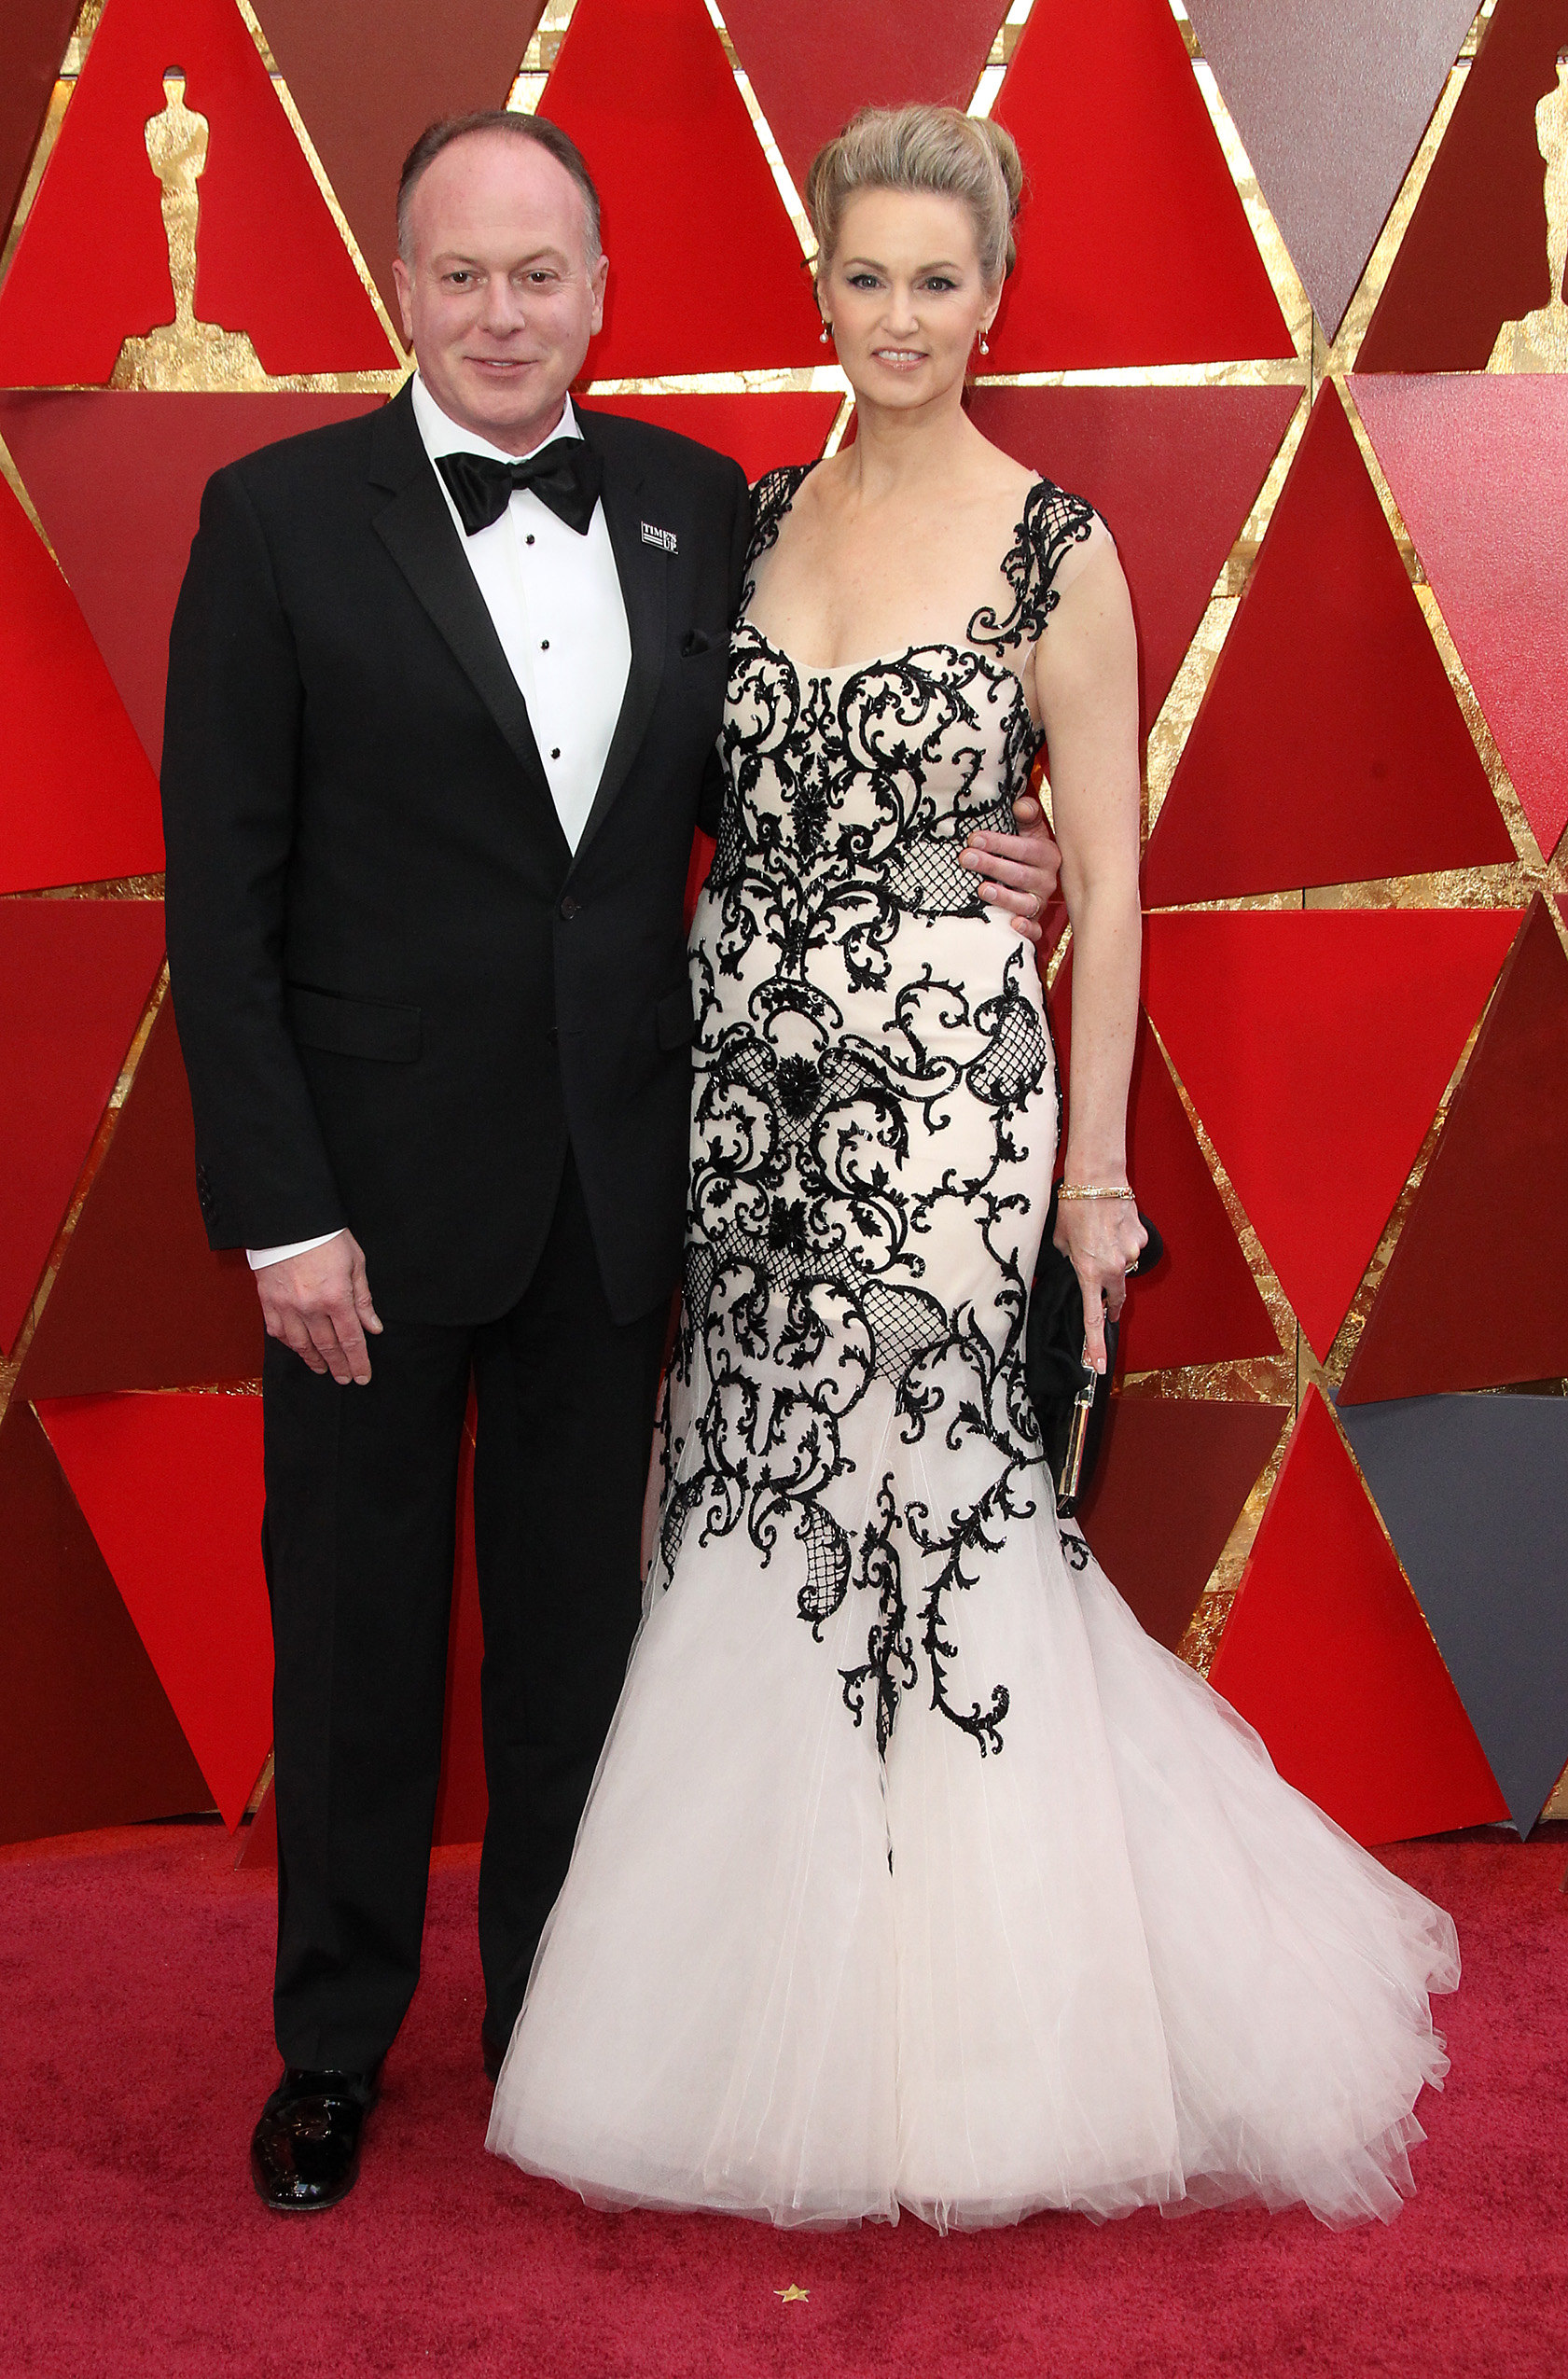 Tom McGrath and guest{&nbsp;}arrive at the 90th Annual Academy Awards (Oscars) held at the Dolby Theater in Hollywood, California. (Image: Adriana M. Barraza/WENN.com)<p></p>